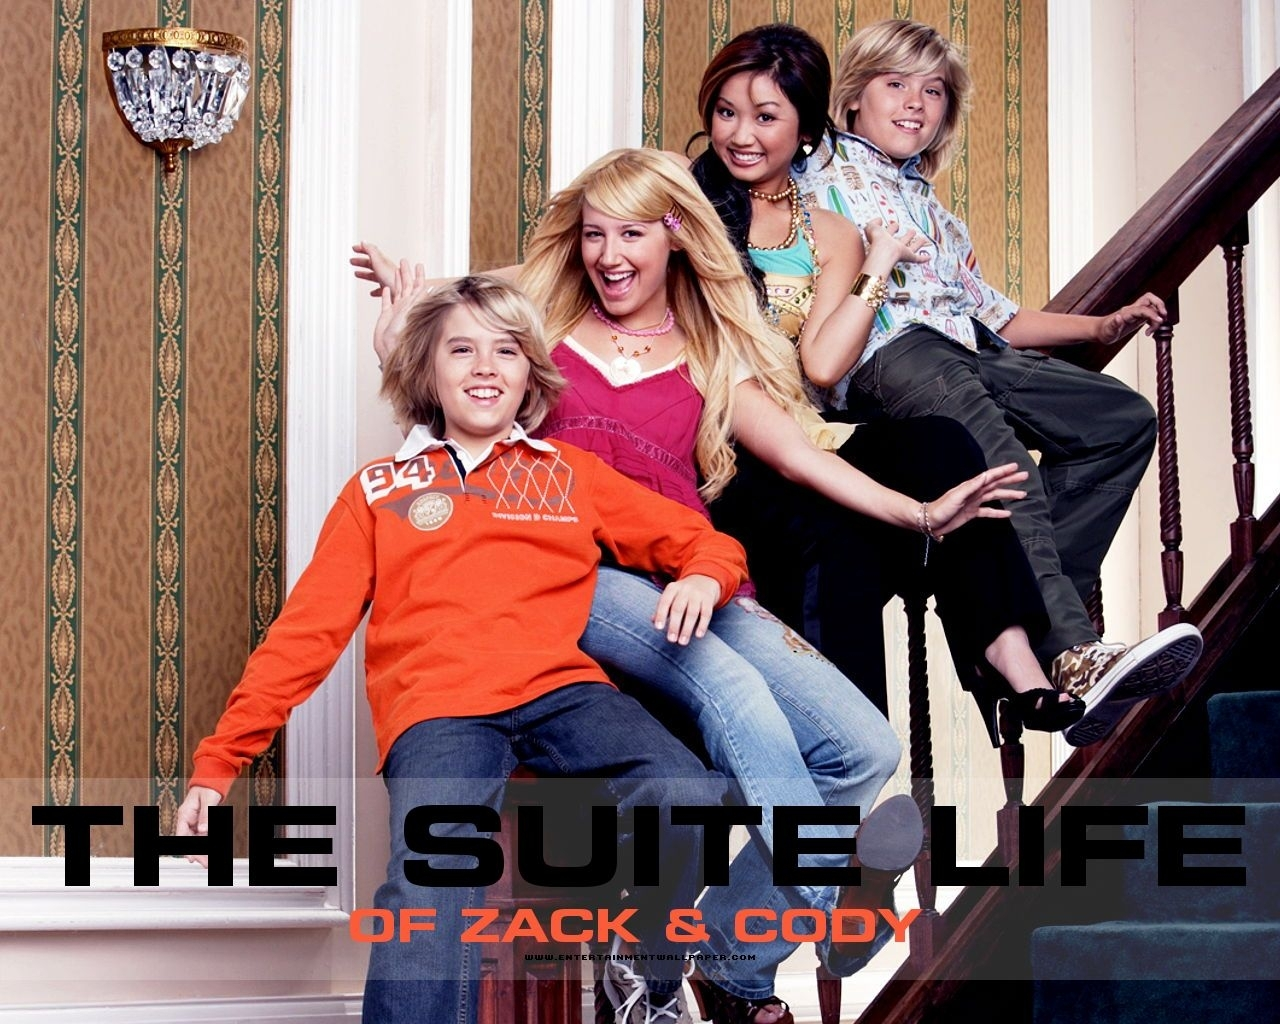 suite-the-suite-life-of-zack-and-cody-4181989-1280-1024.jpg